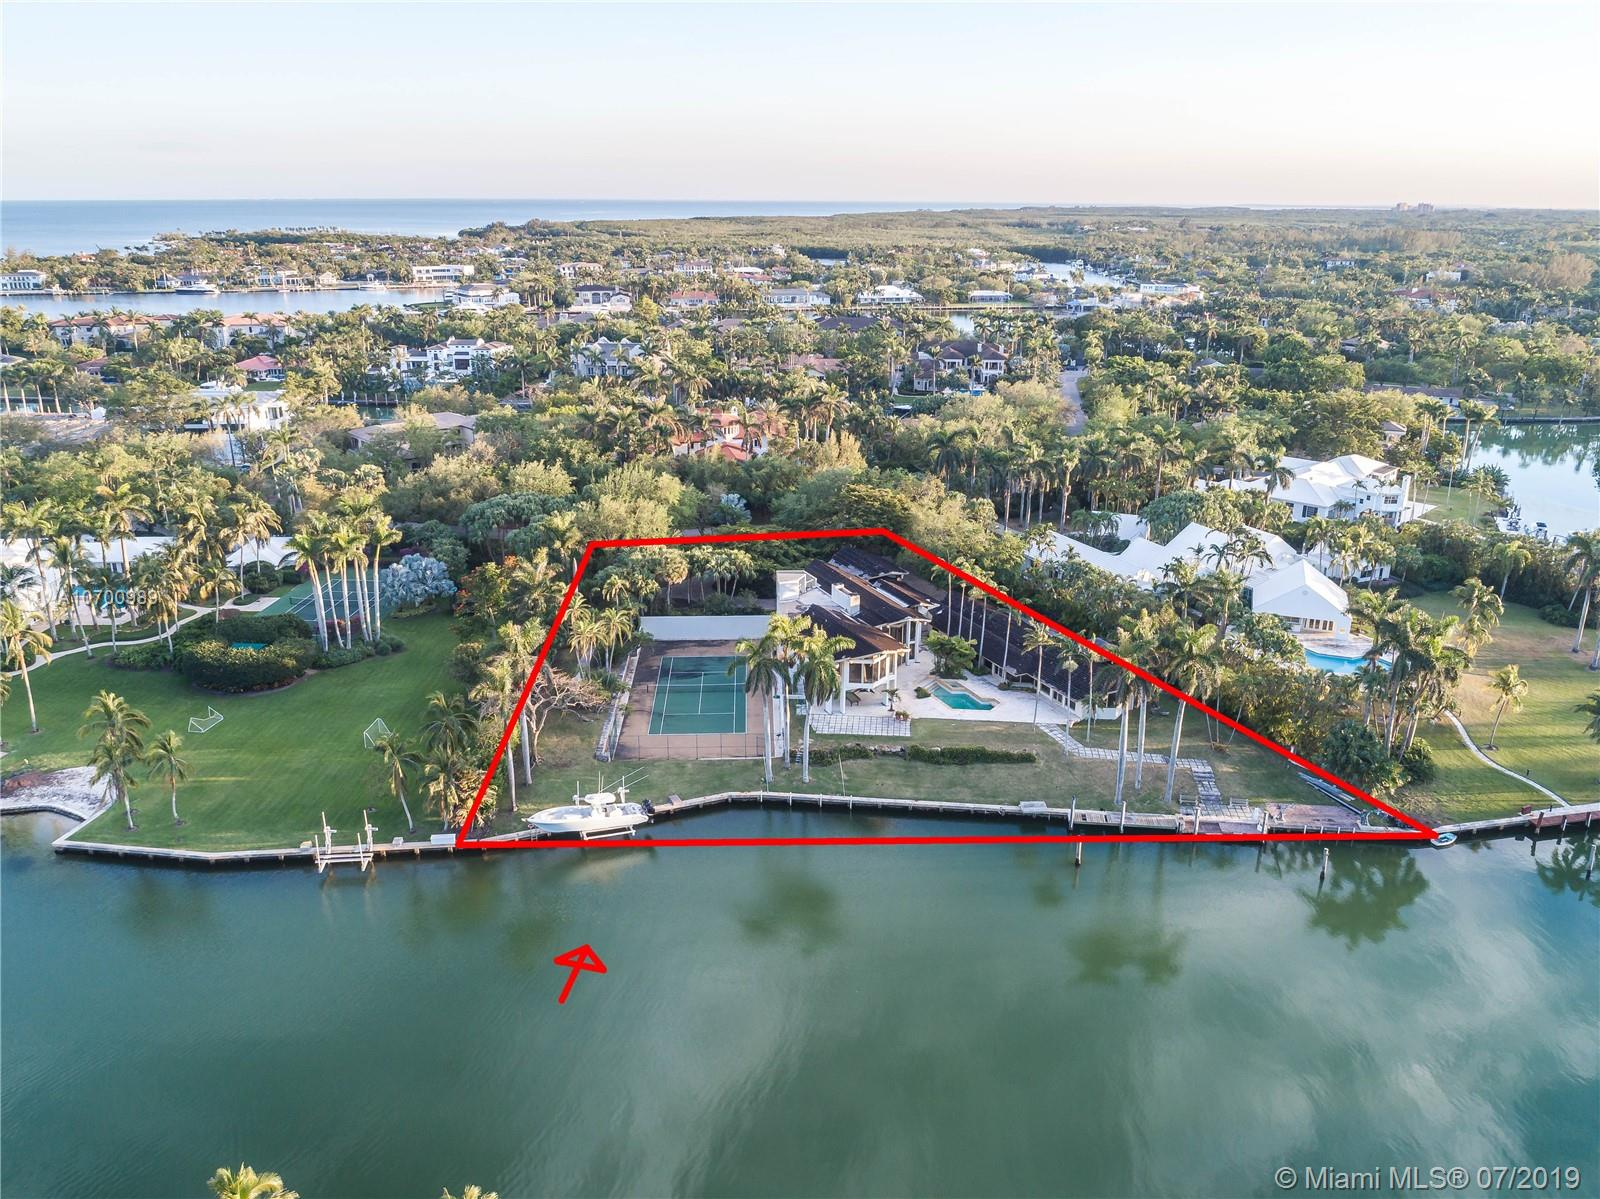 A Unique Waterfront Property Located On Desirable Leucadendra Drive In The Exclusive Guard Gated Waterfront Community, Gables Estates. This Large 1.62 Acre Lot Has 302 Foot Deep Water Frontage With A Very Rare Lagoon Shape Body Of Water In The Backyard Providing Ample Turning Basin For Large Yachts. Price Includes Floor Plans For A 15, 000 Square Foot Resort Style Home Designed By Renowned Architect Cesar Molina For What Would Be One Of The Most Exciting Homes In All Of Gables Estates.<Br /> You Can Buy Lot With Included Plans For The List Price Of $15, 900, 000 Or You Can Also Buy The Home Completed And Fully Built Out To Your Personal Taste For $35, 000, 000. A Blank Canvas With Endless Possibilities For A Boater'S Dream Home!